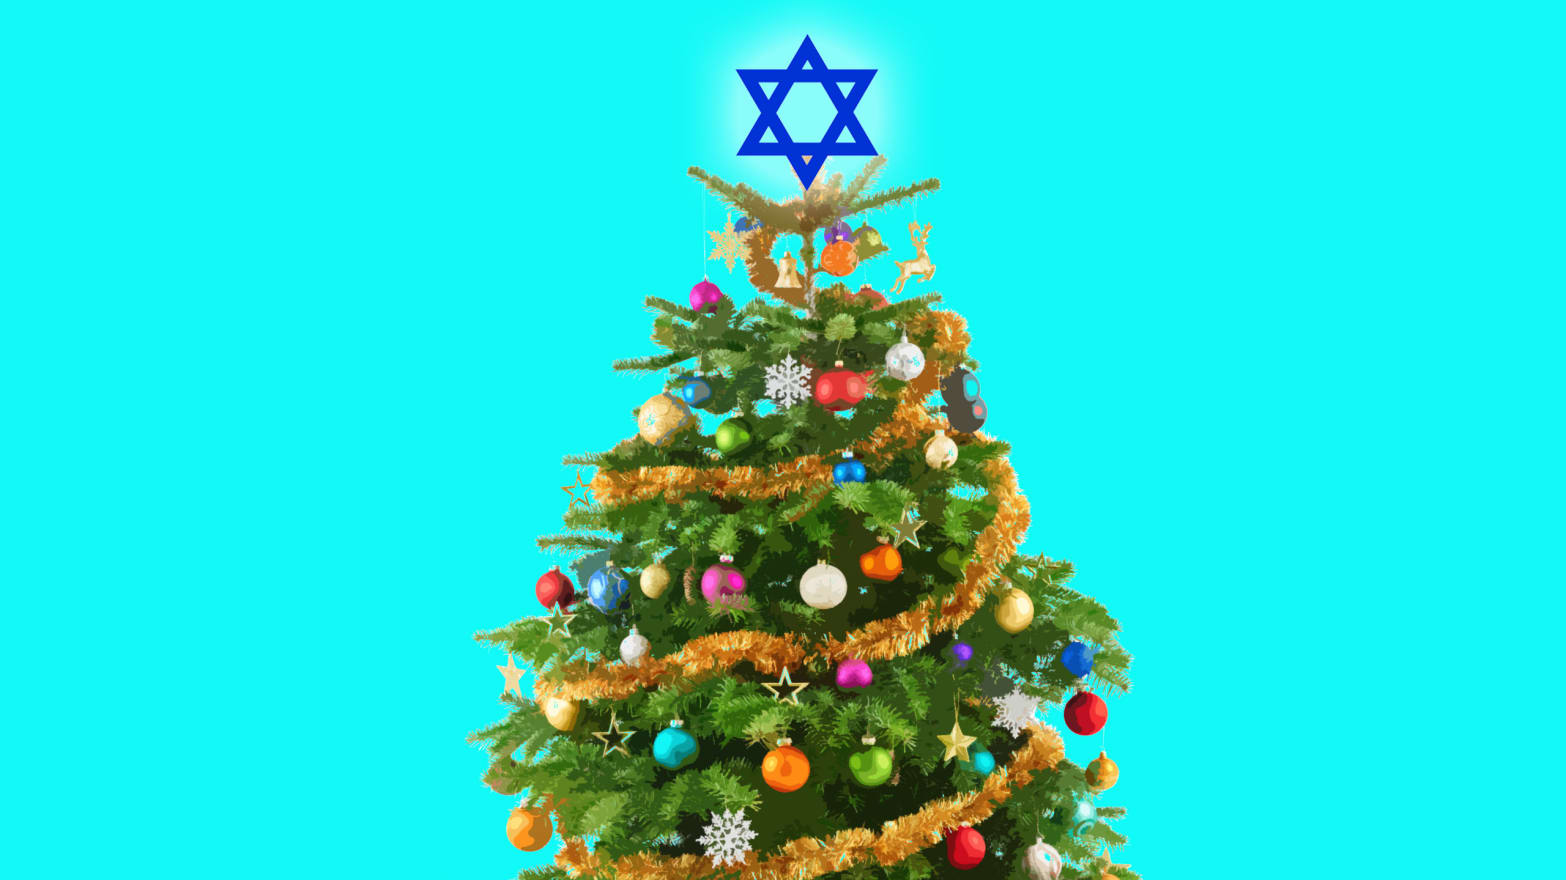 Christmas Tree Illustration.Meet The Jews Who Love Christmas